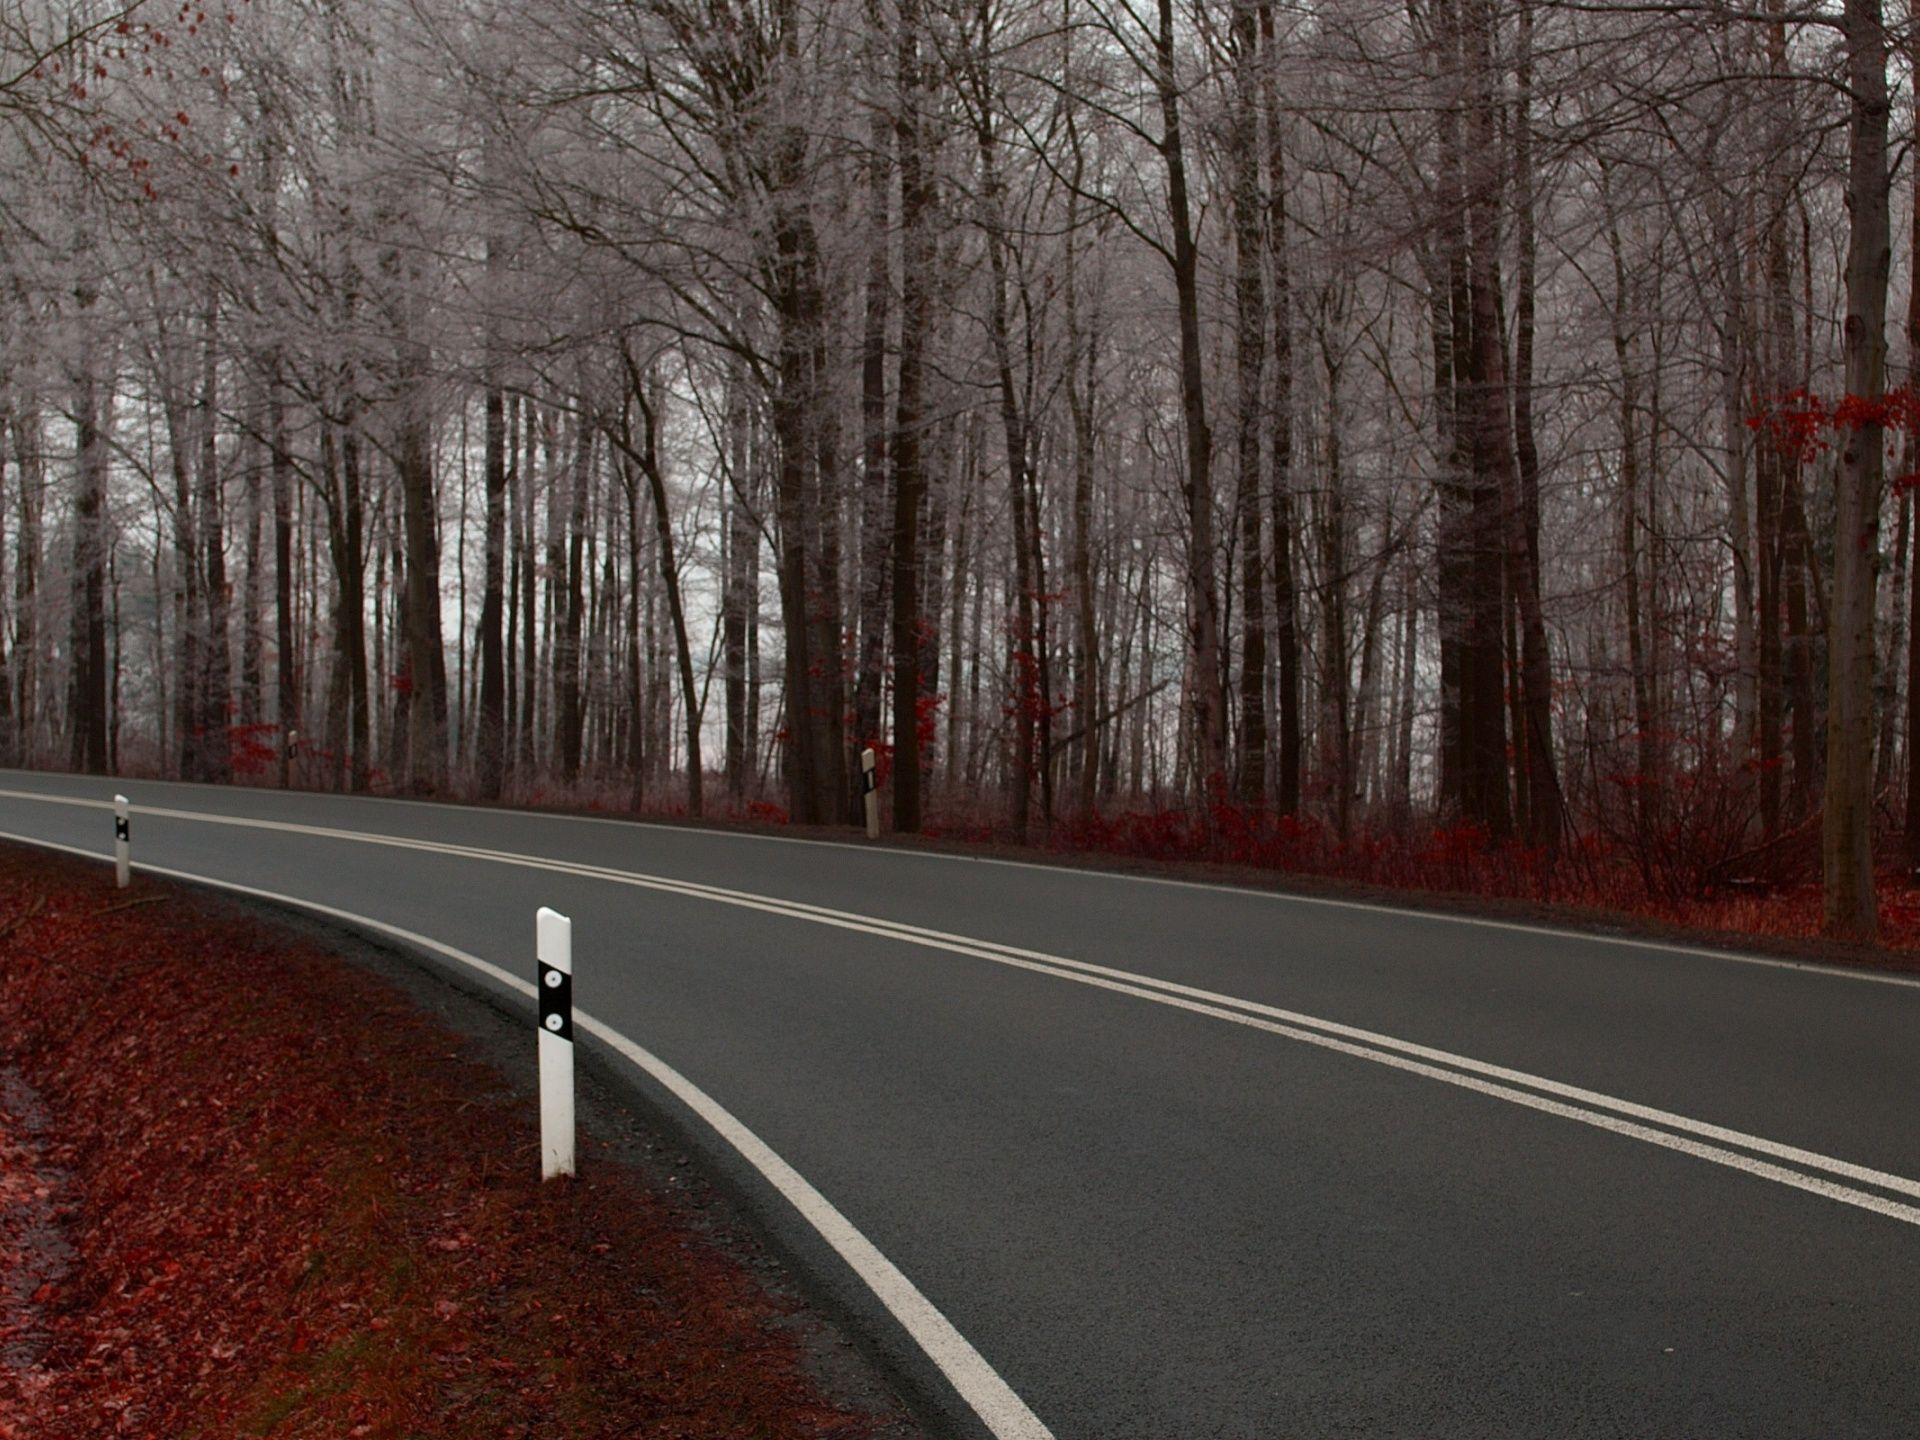 Beautiful Scenery Of Nature An Extremely Clean Road White Trees Alongside Is Looking Good 1920x1440 Free Wallpaper Download Beautiful Roads Road Background Wallpaper long road trees path marking